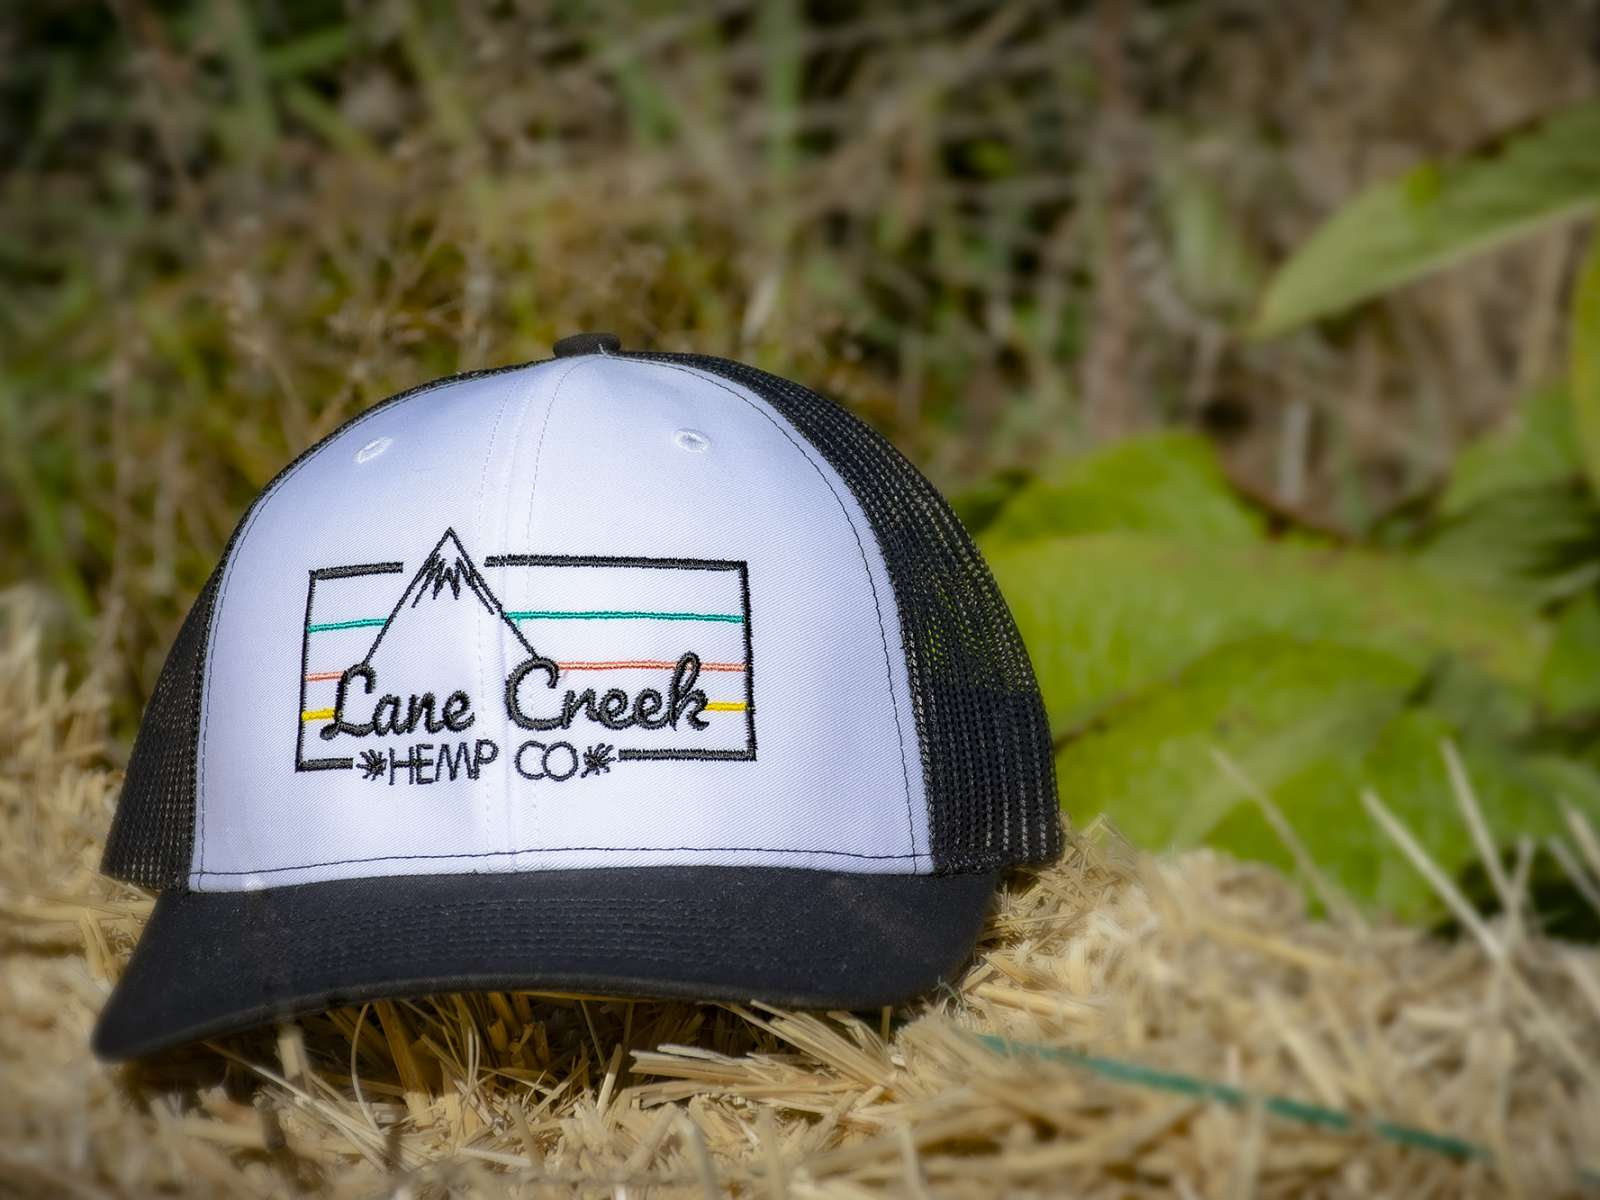 Lane Creek Hemp Co Rain Cloud Trucker Hat